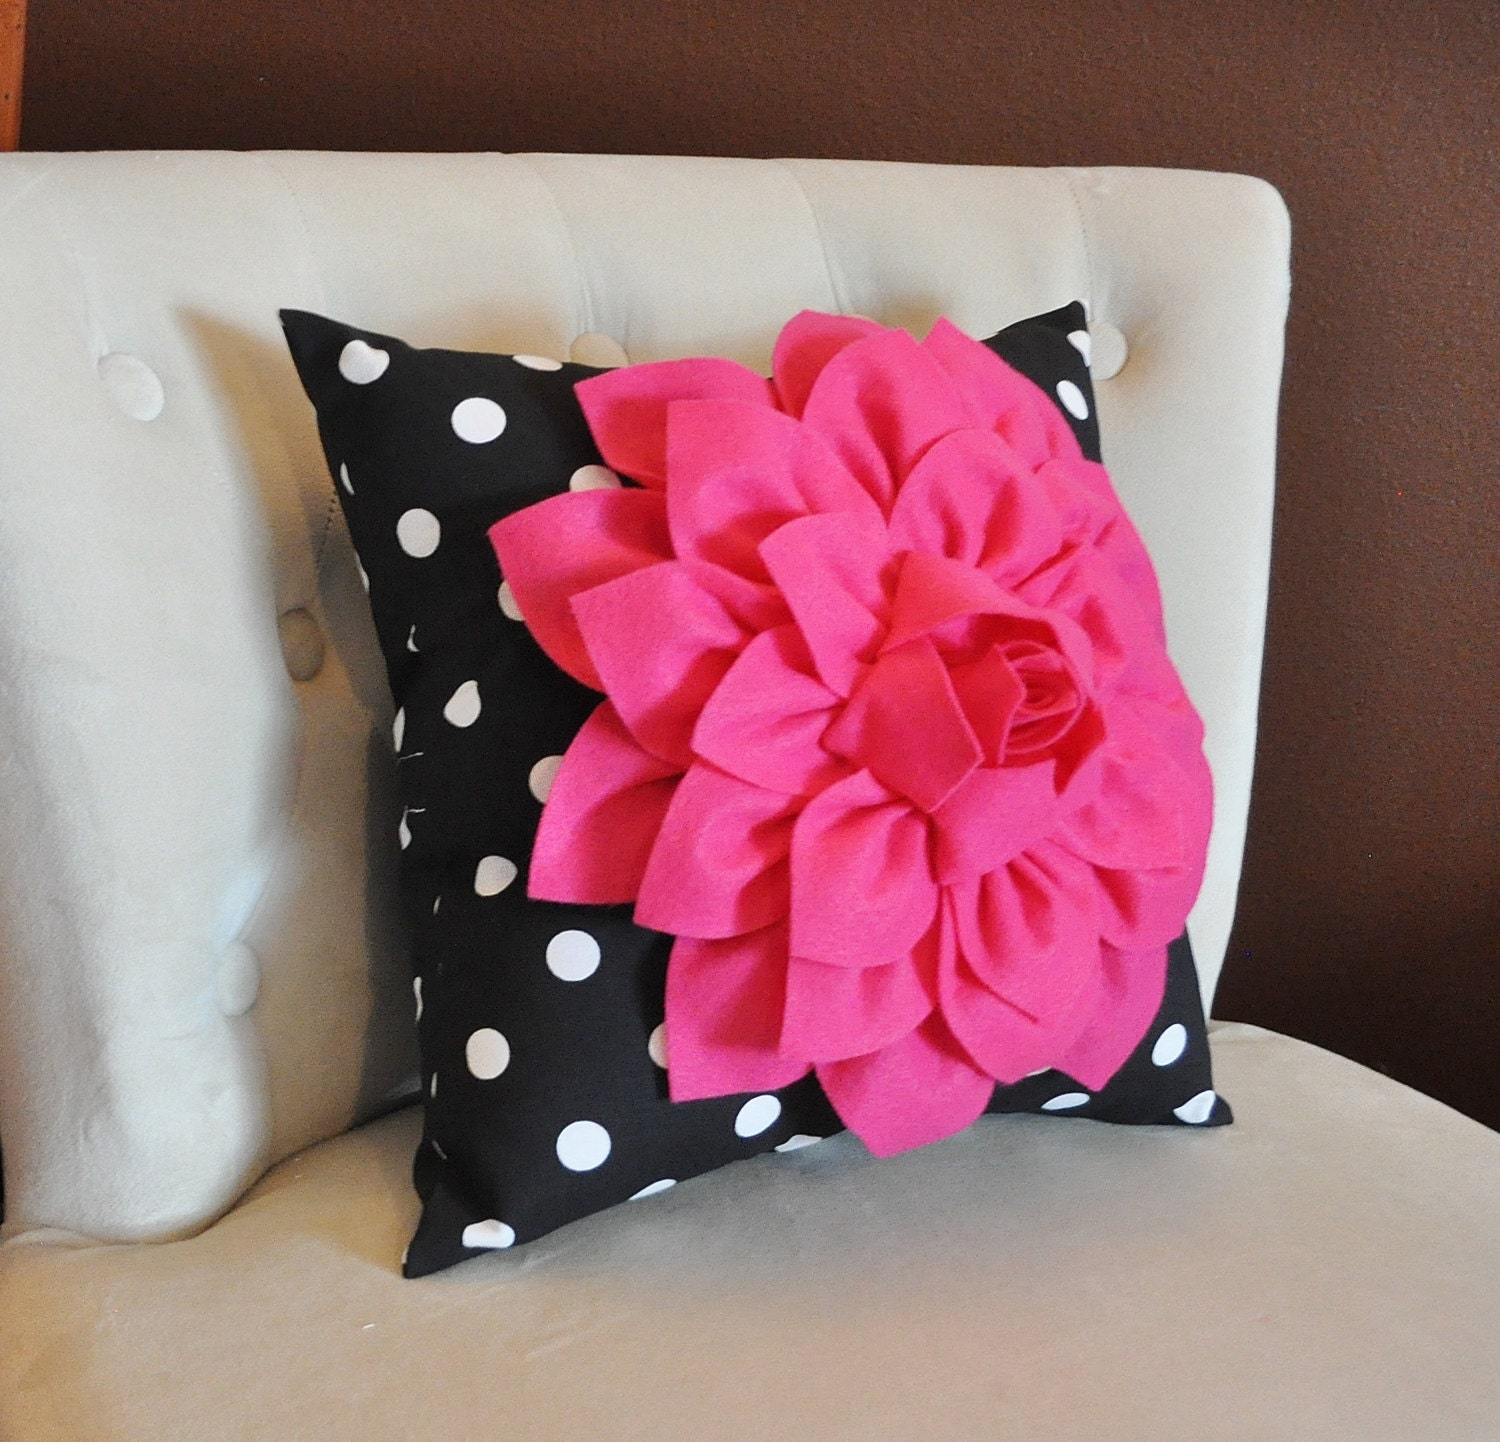 Hot Pink Flower on Black and White Polka Dot Pillow